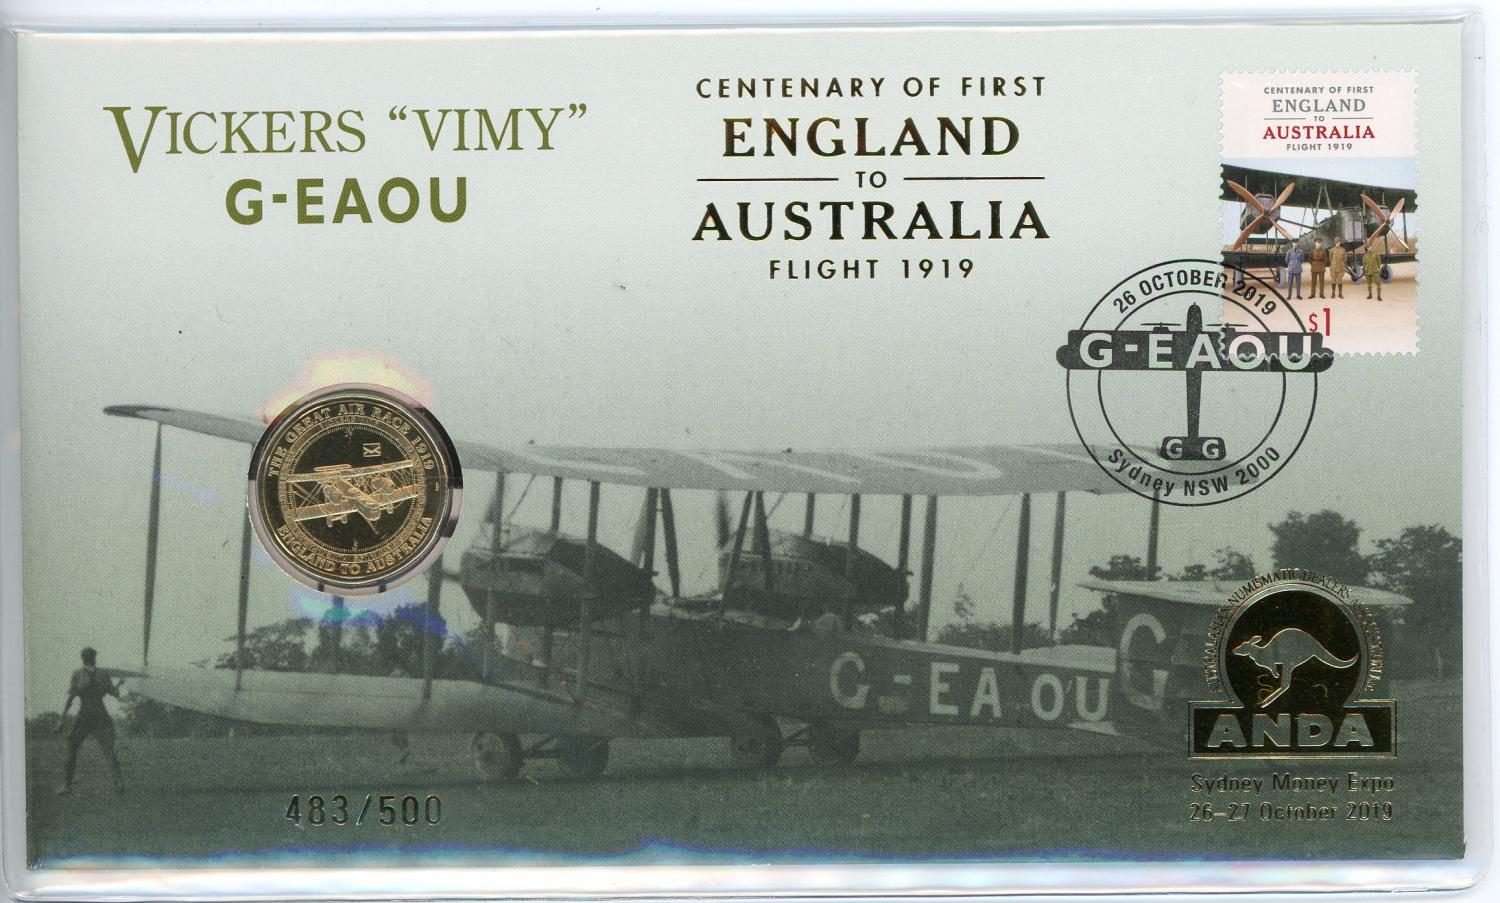 Thumbnail for 2019 Centenary of First Flight England to Aust Flight 1919 Vickers 'Vimy' G-EAOU Sydney Money Expo ANDA PNC With Envelope Privy